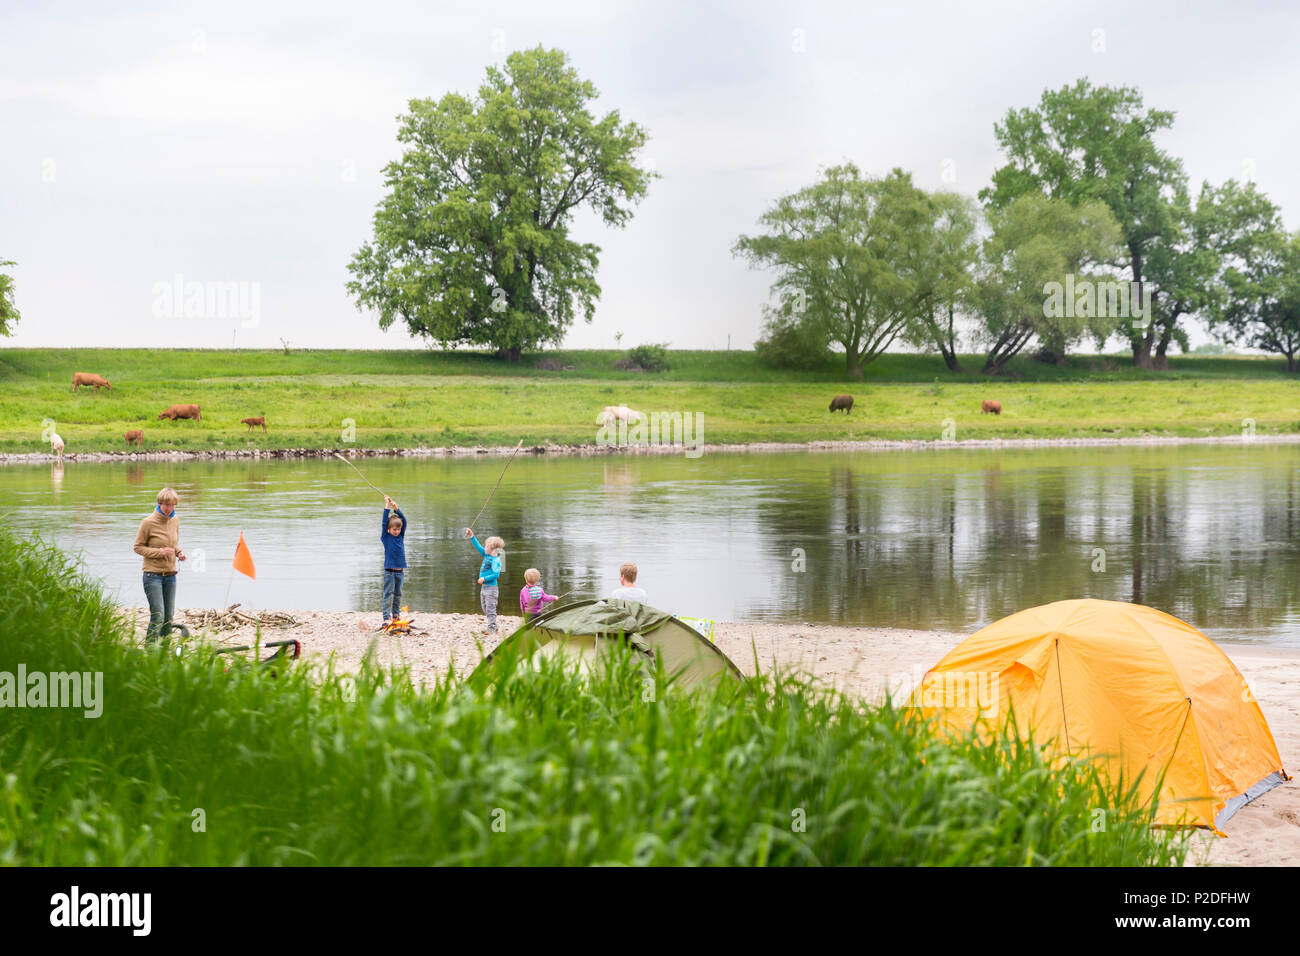 Camping along the river Elbe, Family bicycle tour along the river Elbe, adventure, from Torgau to Riesa, Saxony, Germany, Europe Stock Photo